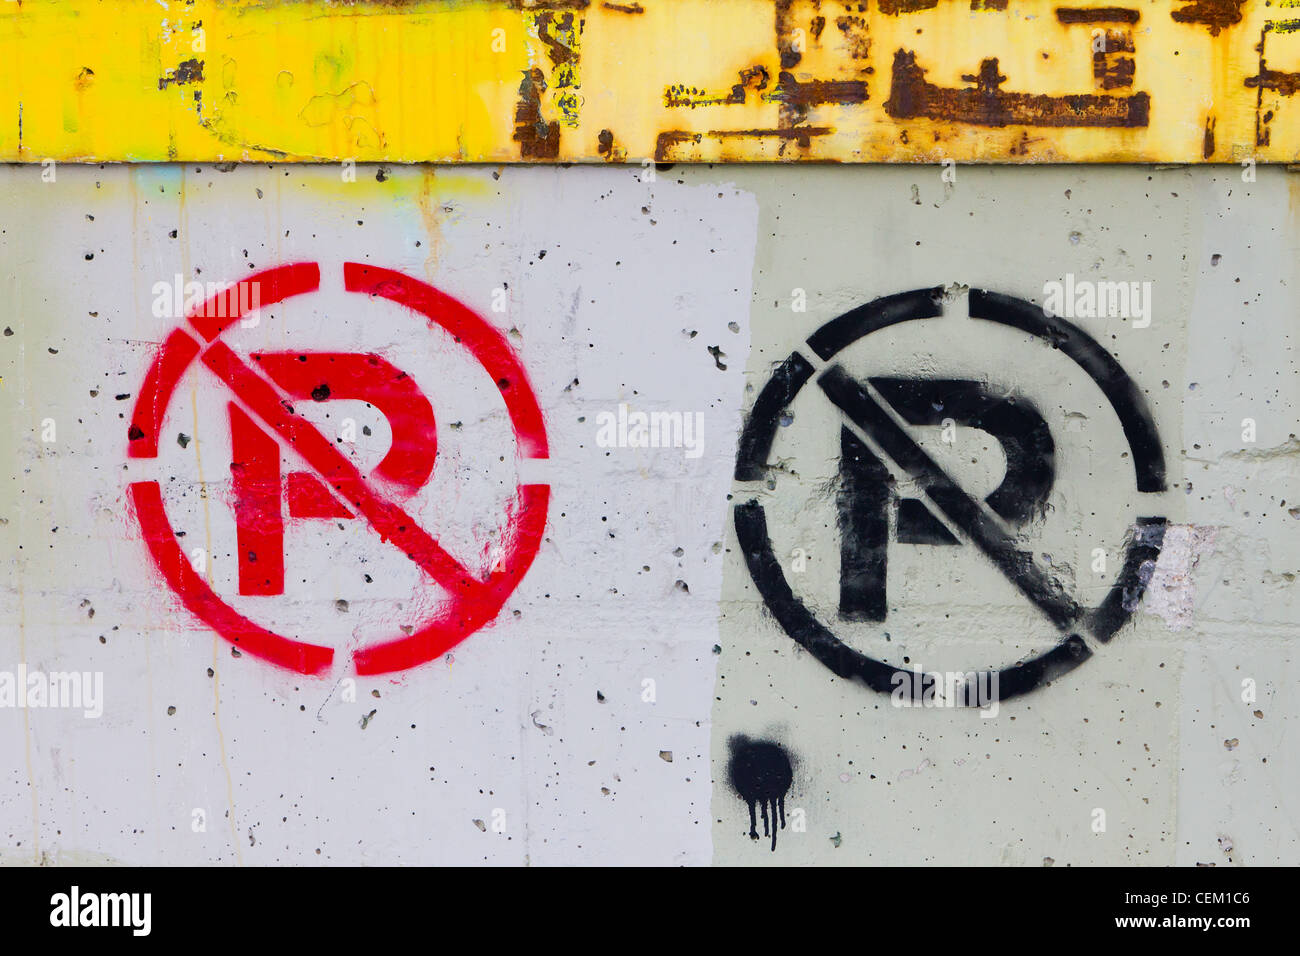 No parking sign painted on a grungy old wall on an abandoned urban building in downtown Denver Colorado USA. - Stock Image